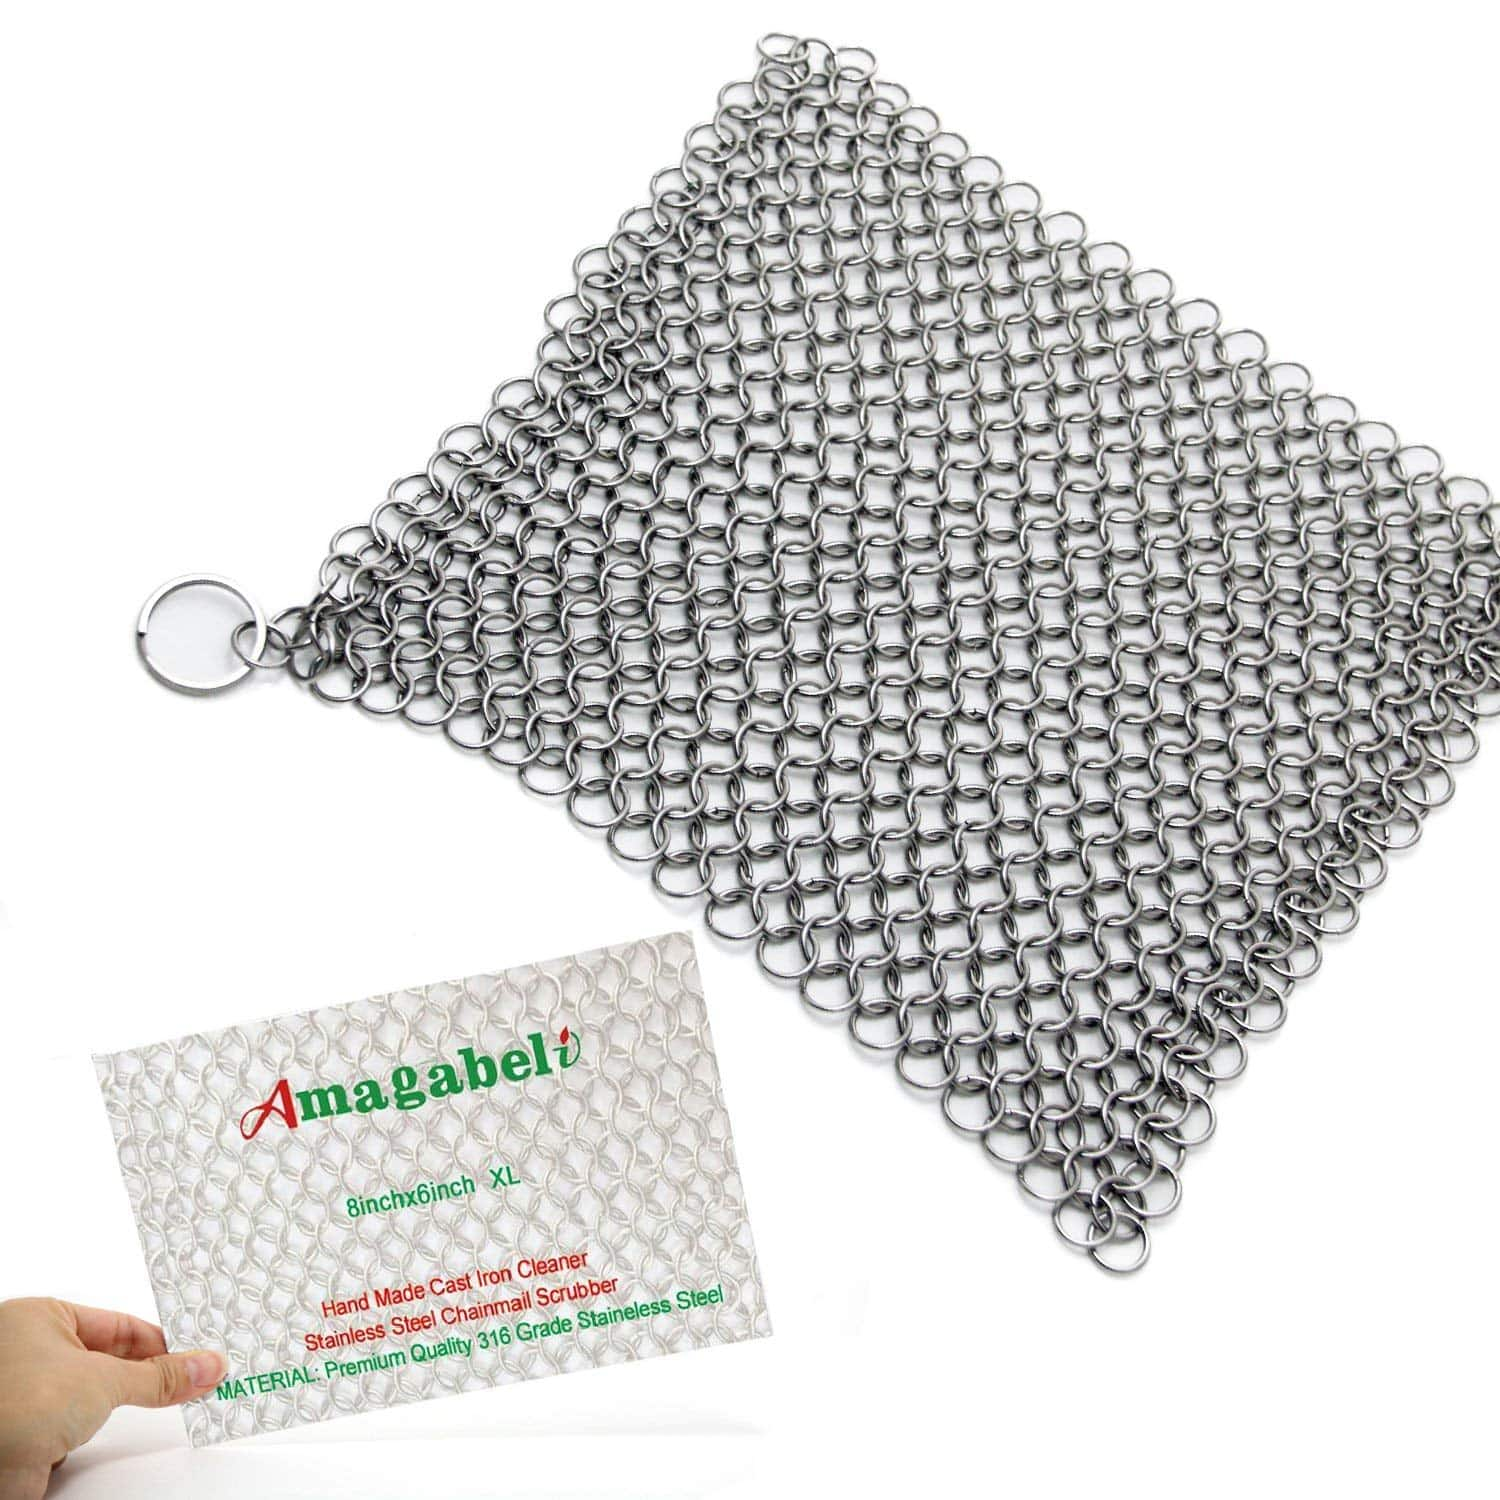 "Amagabeli 8""x6"" Stainless Steel 316L Cast Iron Cleaner Chainmail Scrubber - $6.49 + FS)"